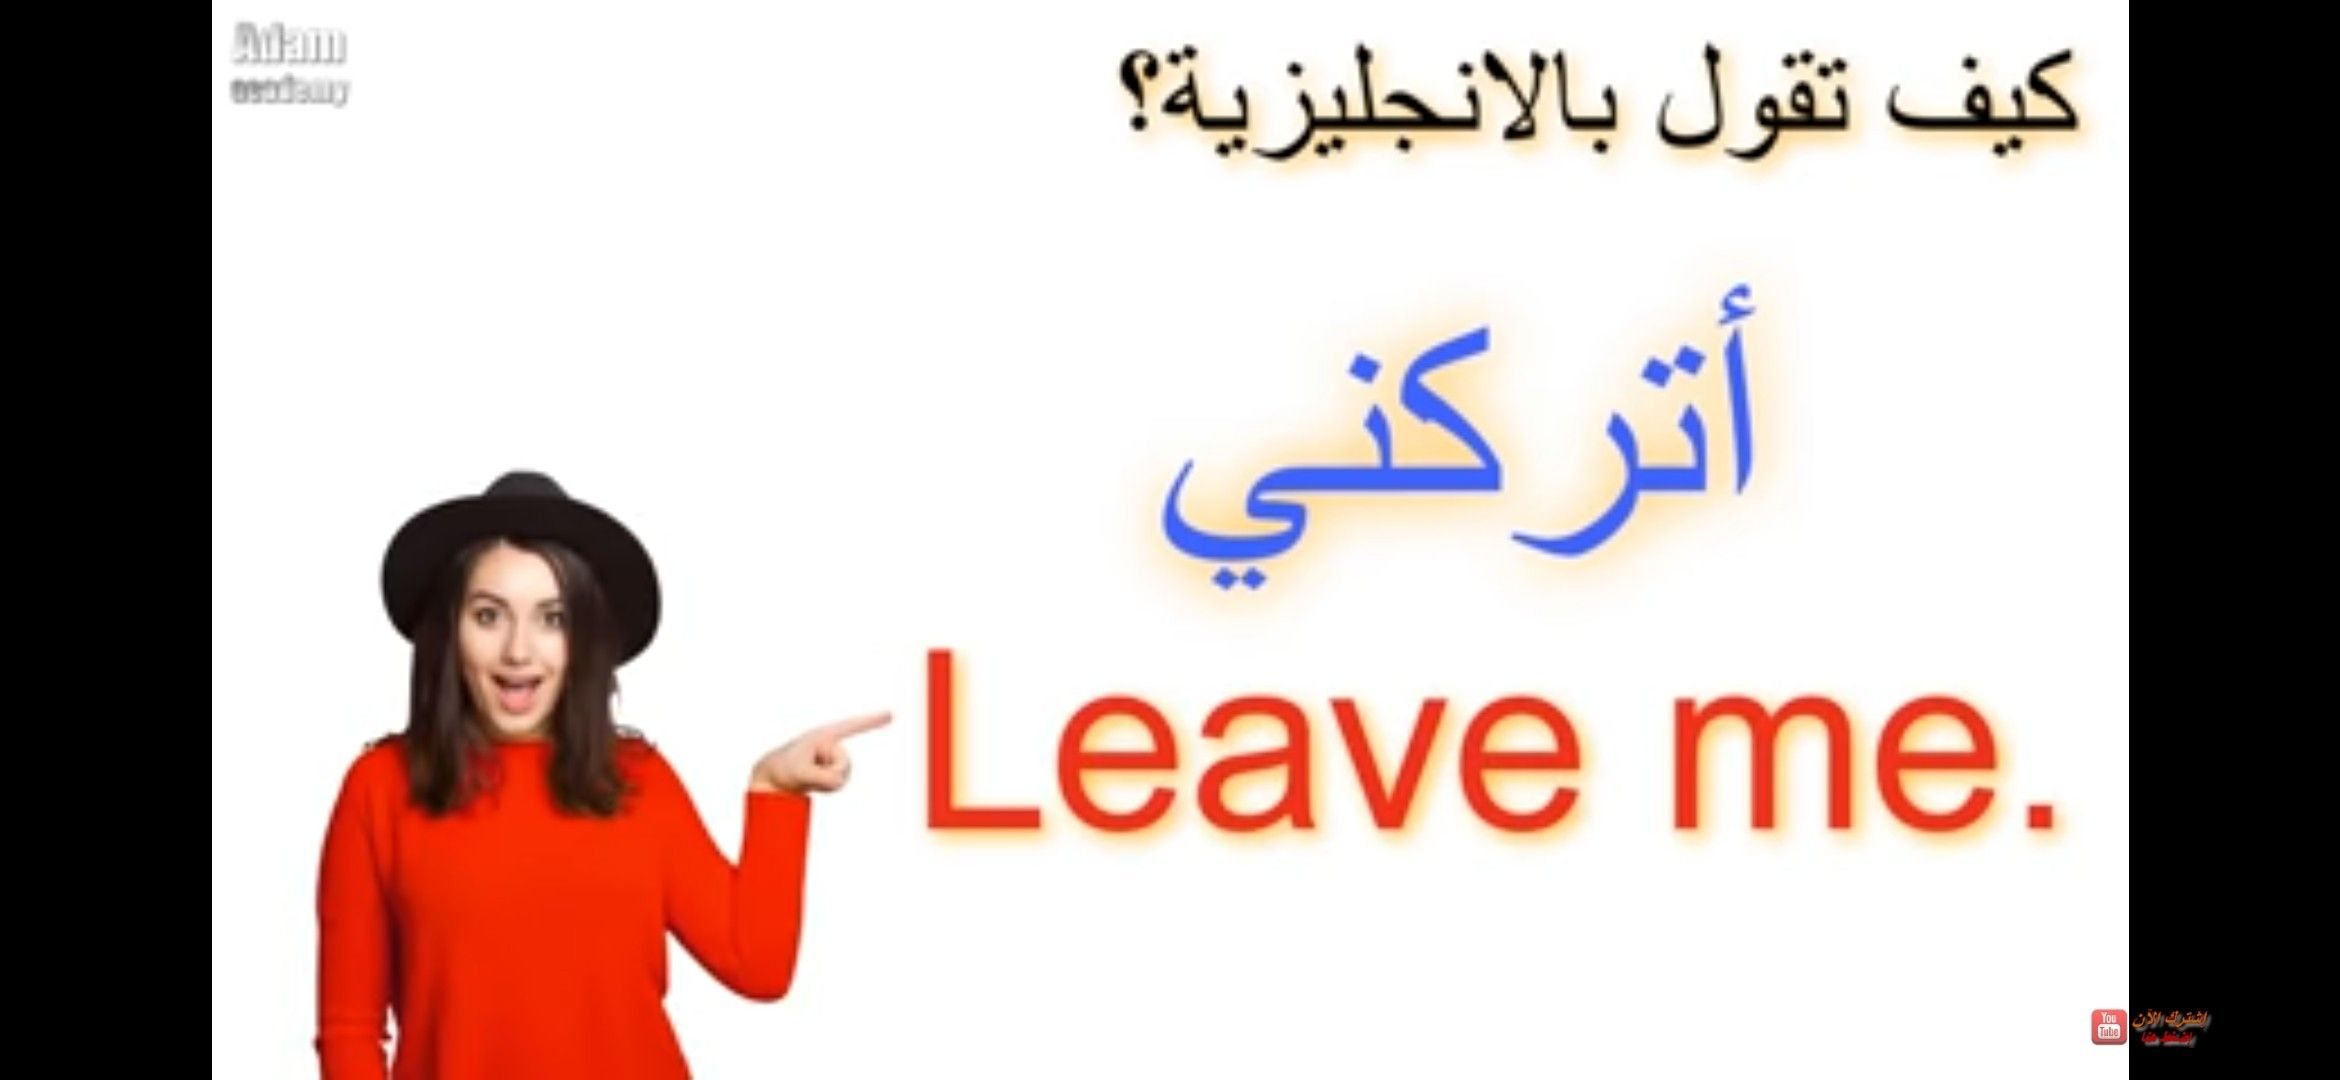 Pin By علي اميري On English In 2020 Learning Arabic Arabic Sentences Arabic Quotes